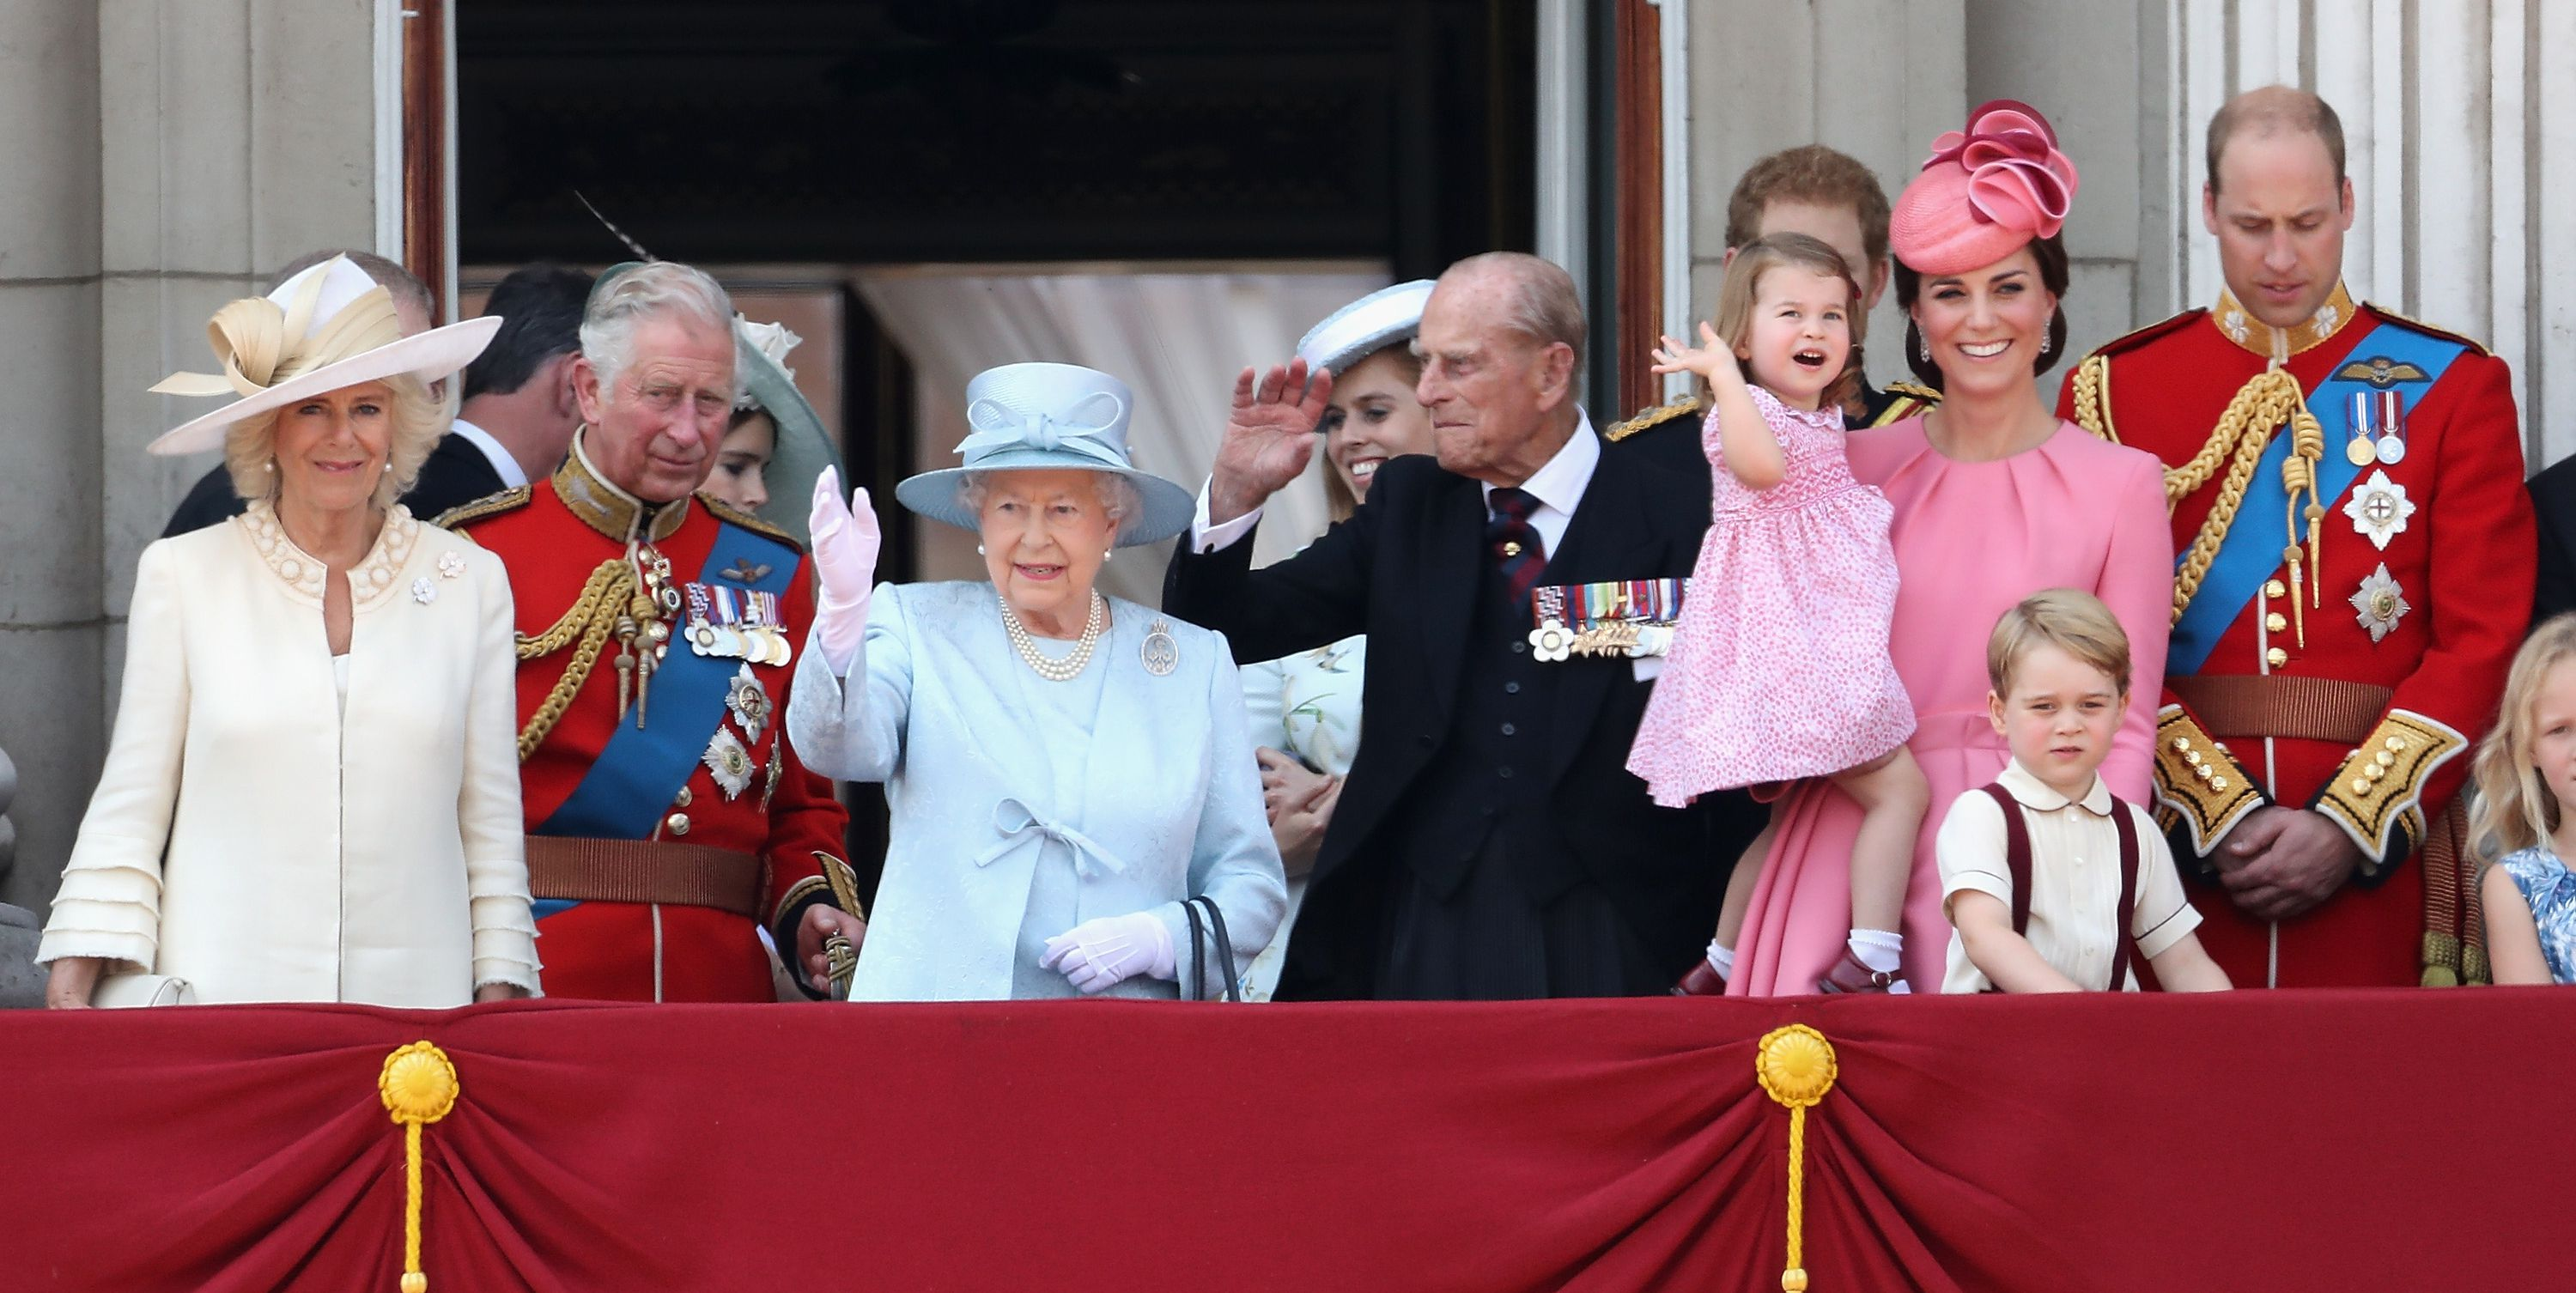 The Next 25 Royals in Line For the British Throne